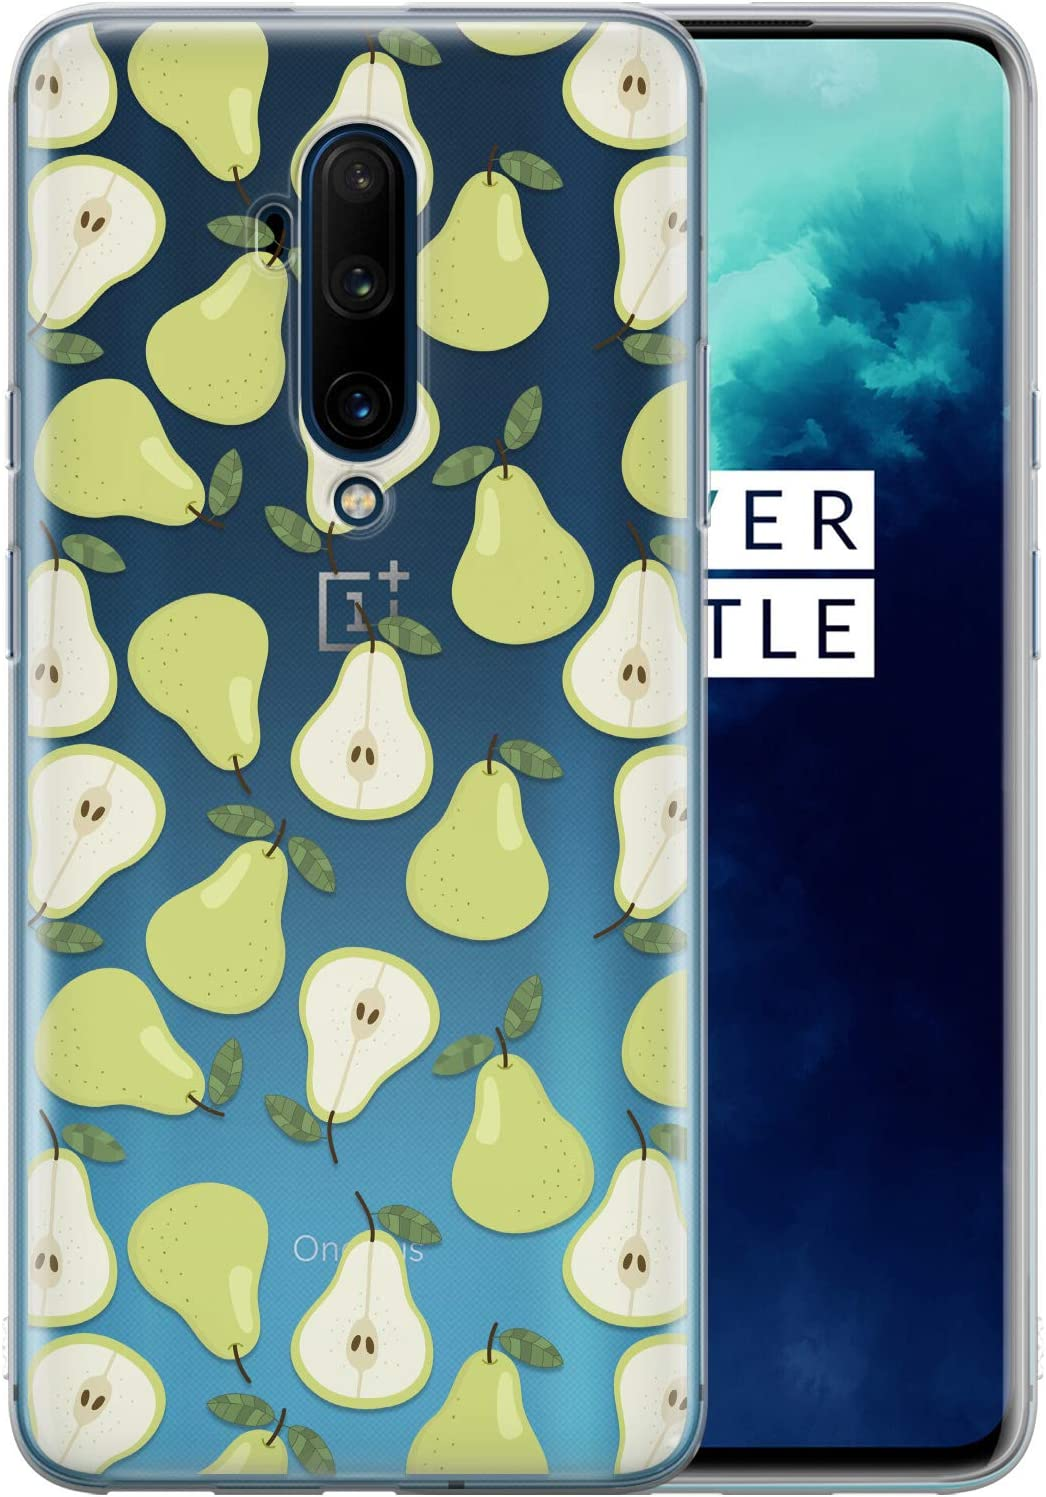 Toik Case Compatible with OnePlus Nord N10 5G N100 1+ 9 8T 8 Pro 7T Pro 5G 6T 5T Slim Protective TPU Food Silicone Green Pattern Fruits Pear Cute Clear Simple Cover Flexible Lightweight phpat183